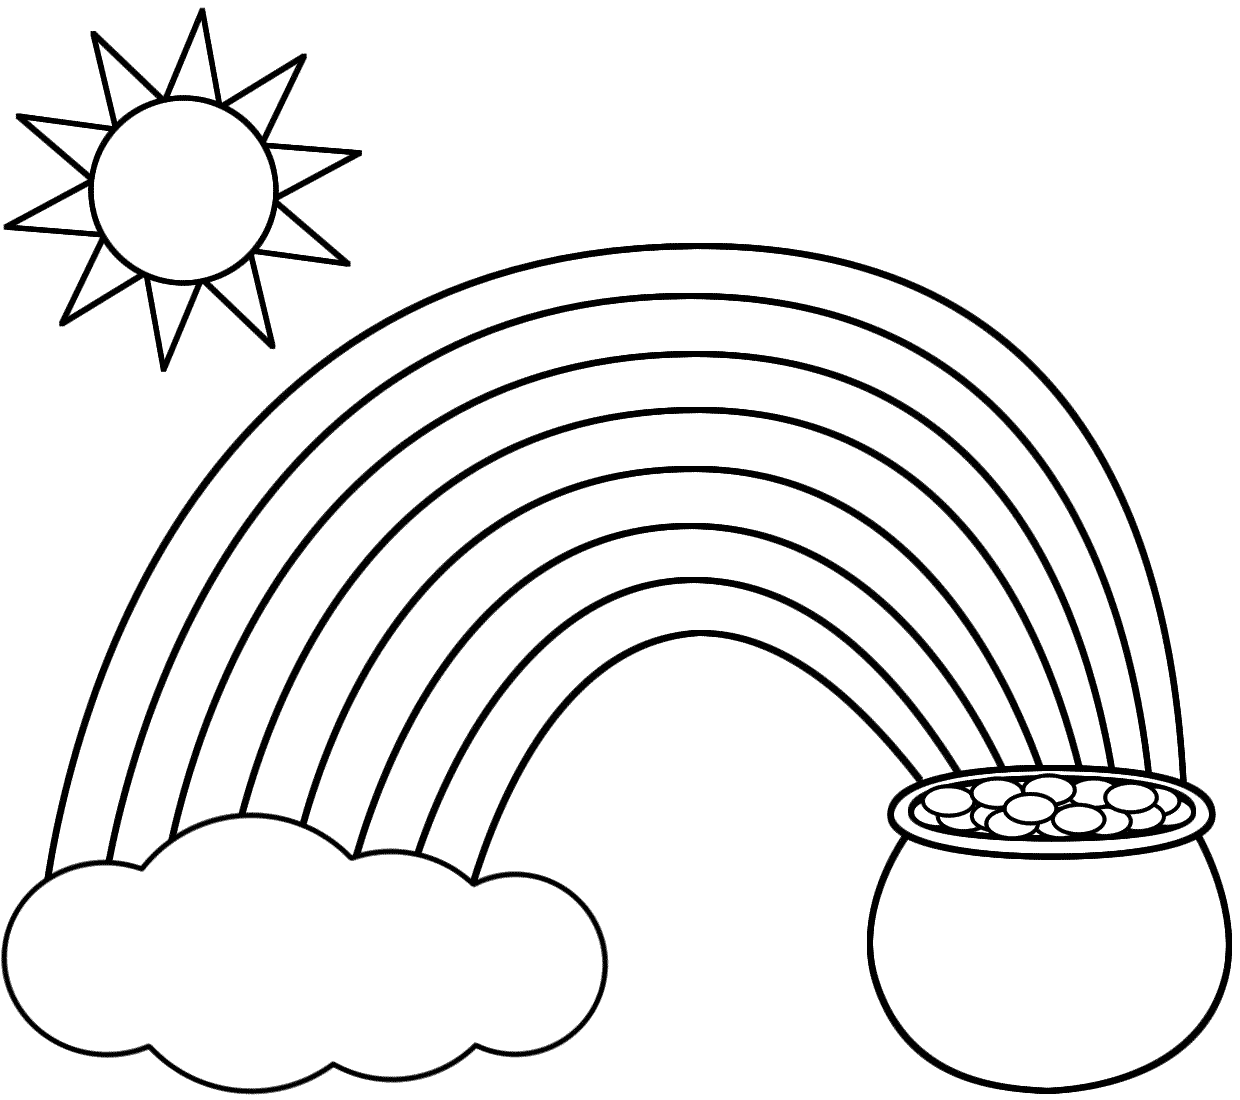 Rainbow and rain coloring pages - Free Printable Coloring Pages Of Rainbow Barriee